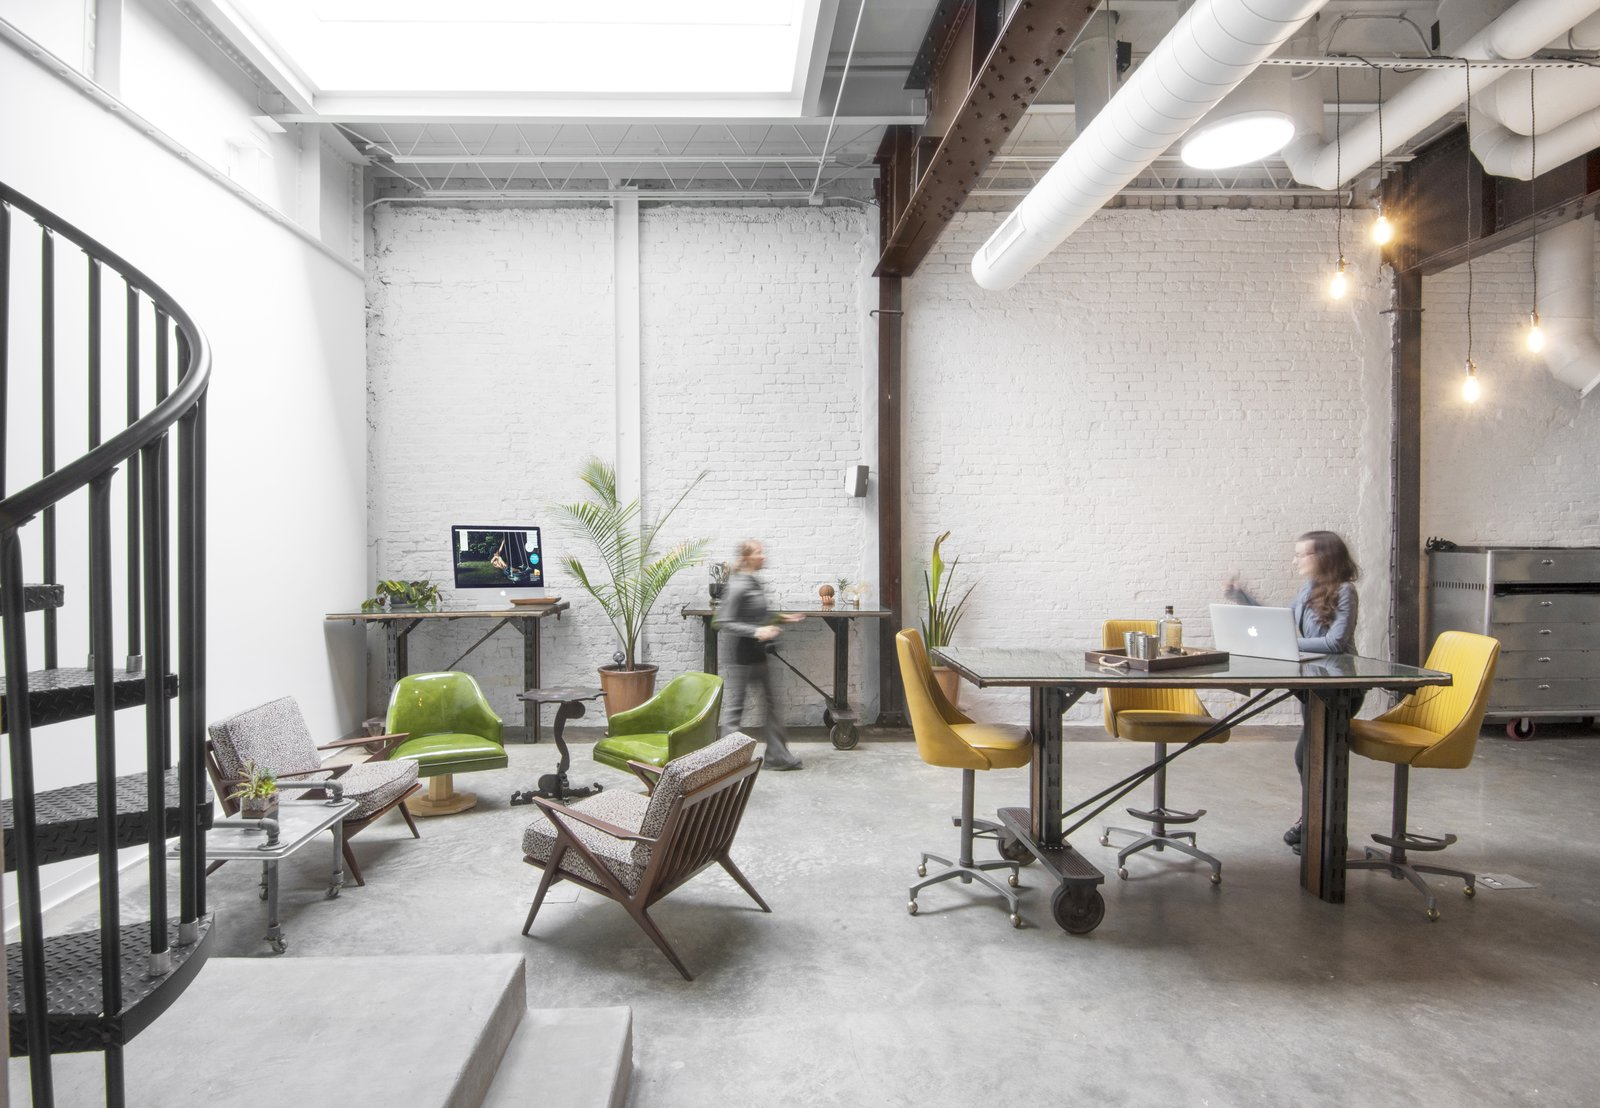 Studio work space featuring standing desks made from up cycled RR carts, giant skylight. Studio GoodLight by Liesa Cole